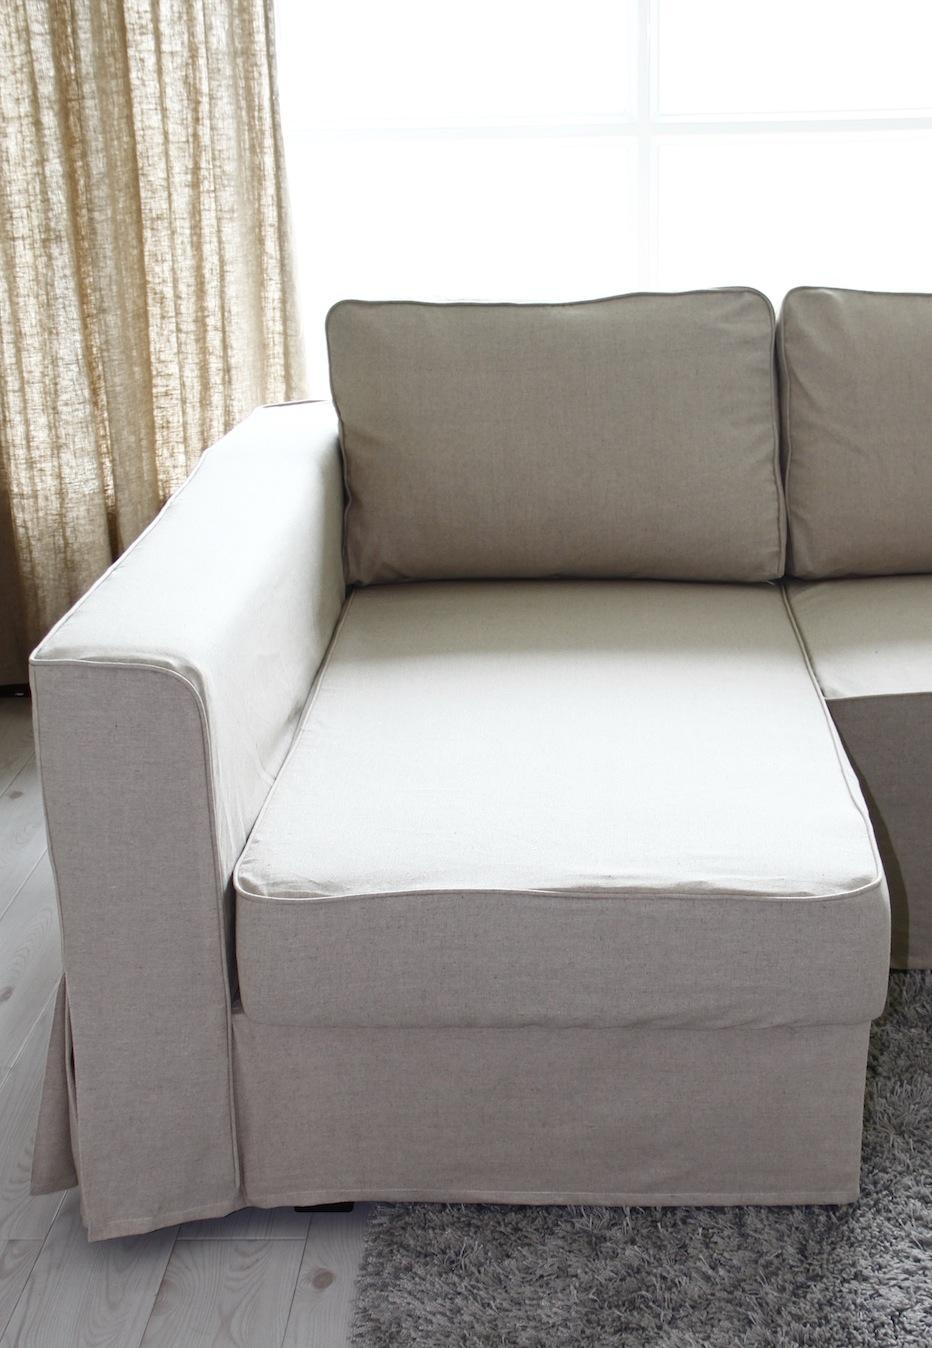 Furniture & Rug: Charming Slipcovers For Sofas With Cushions In Armless Couch Slipcovers (Photo 9 of 20)